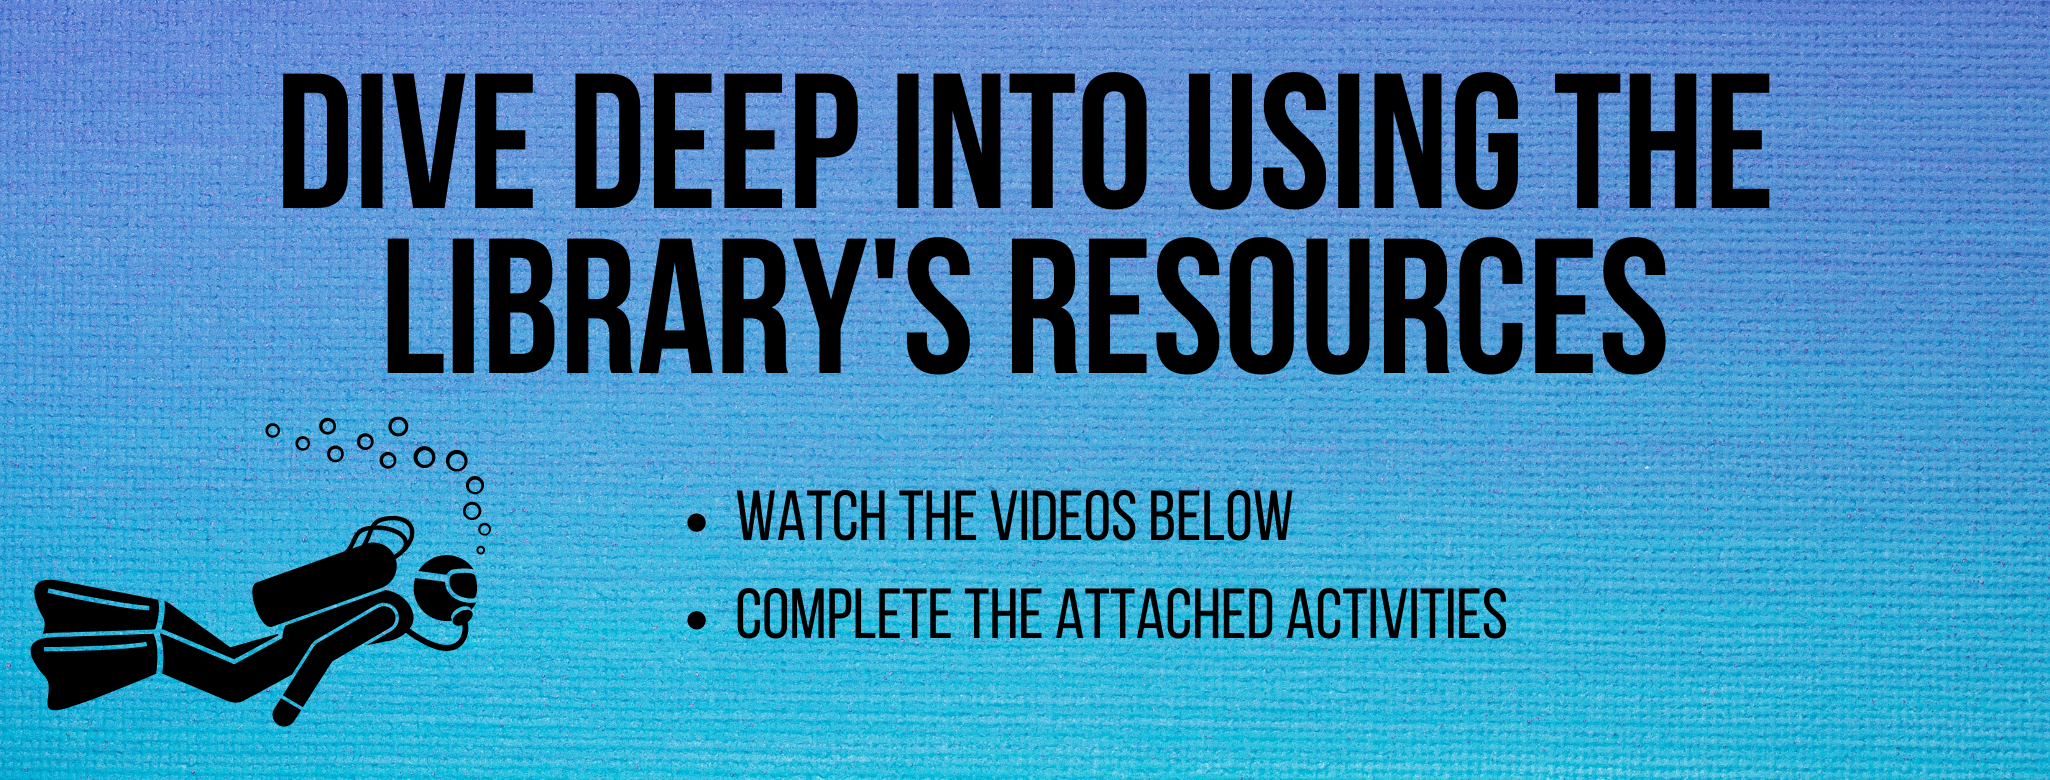 Dive deep into using the library's resources. Watch the videos and completed attached activities